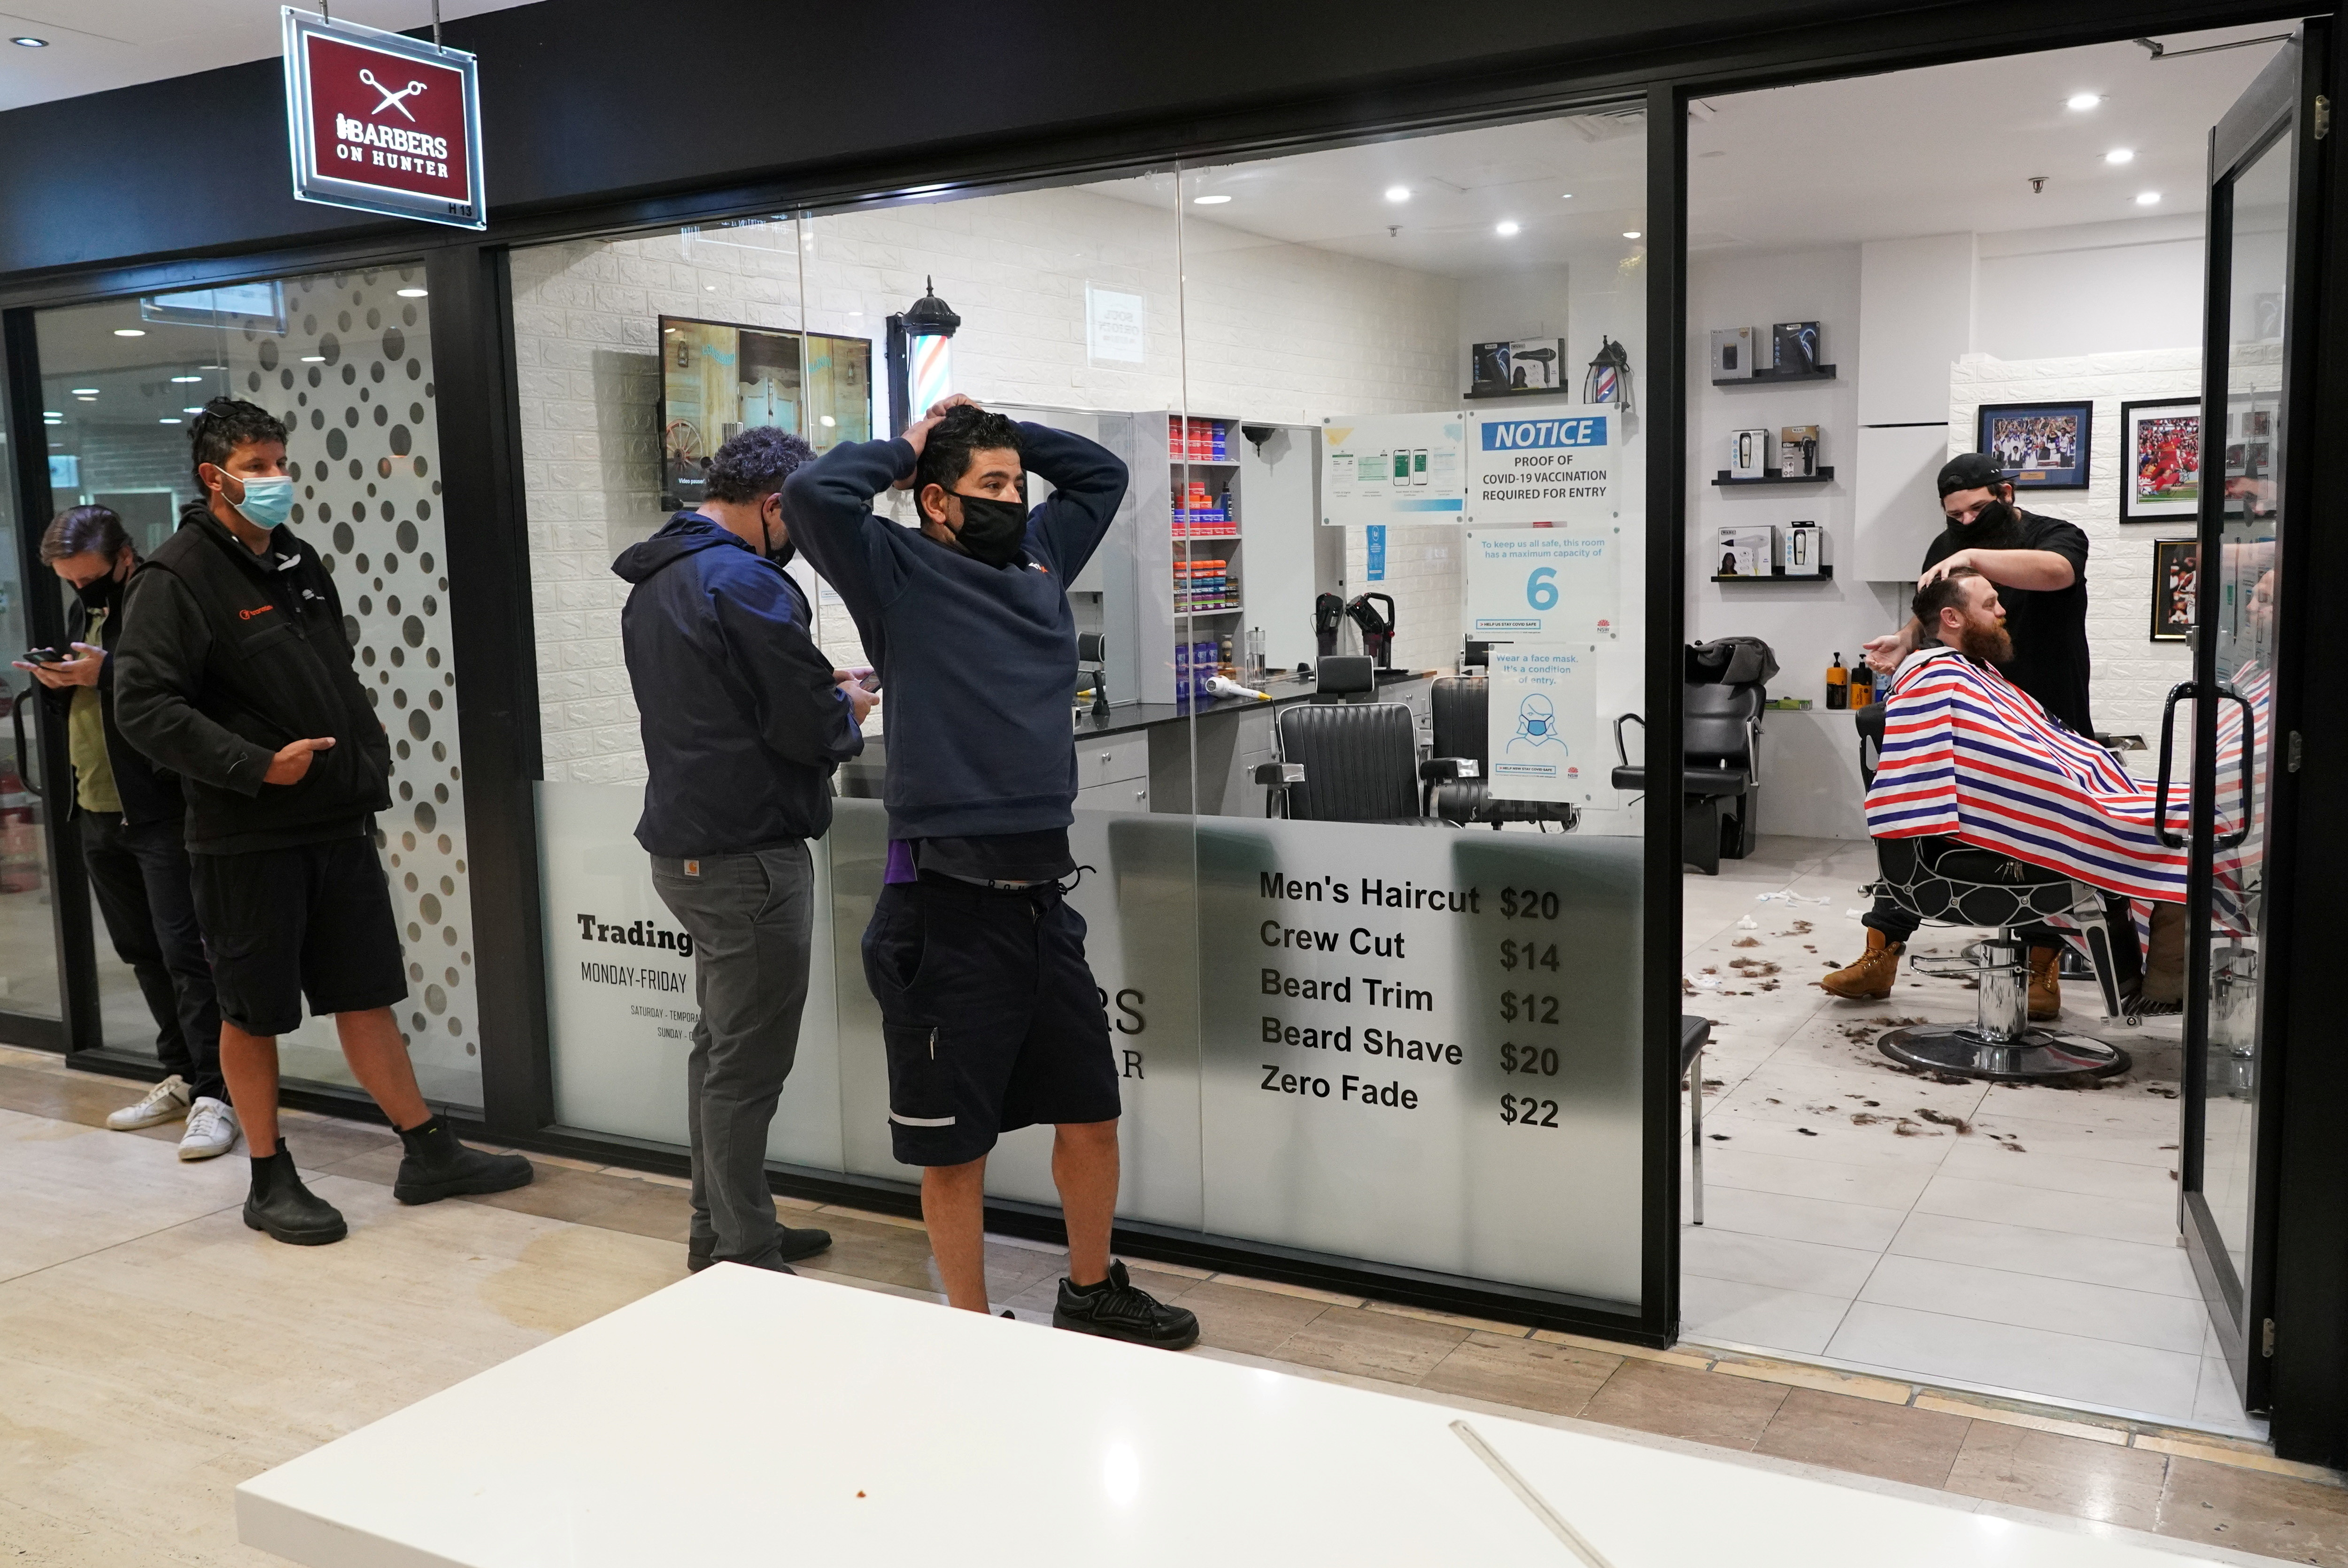 Customers wait in line at a city centre barber shop on the first day of many such businesses re-opening to vaccinated patrons, following months of lockdown orders that closed businesses to curb an outbreak of the coronavirus disease (COVID-19), in Sydney, Australia, October 11, 2021.  REUTERS/Loren Elliott - RC2C7Q9PQEAP